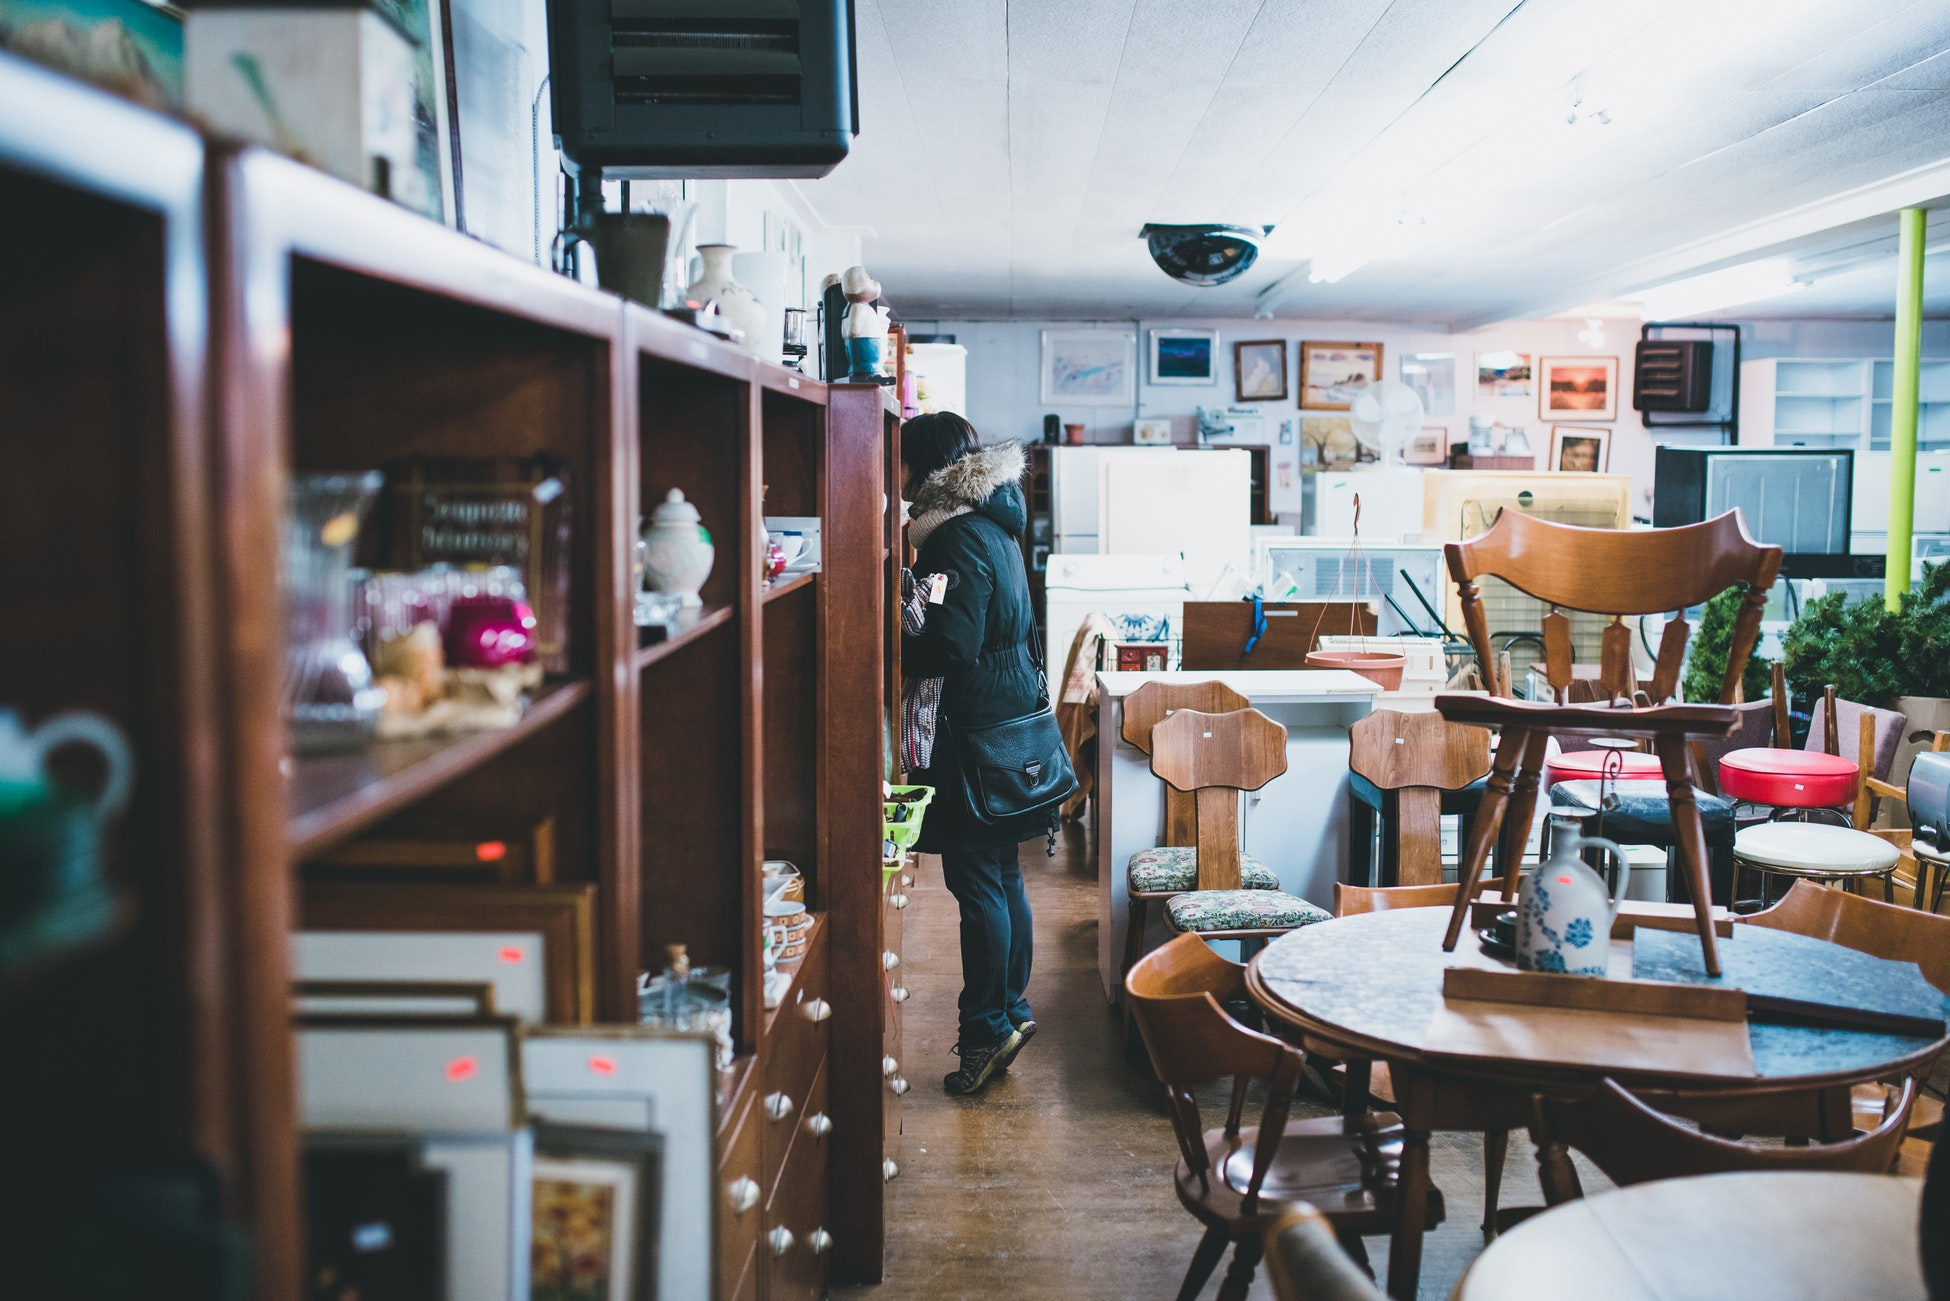 A woman standing in a full thrift shop.